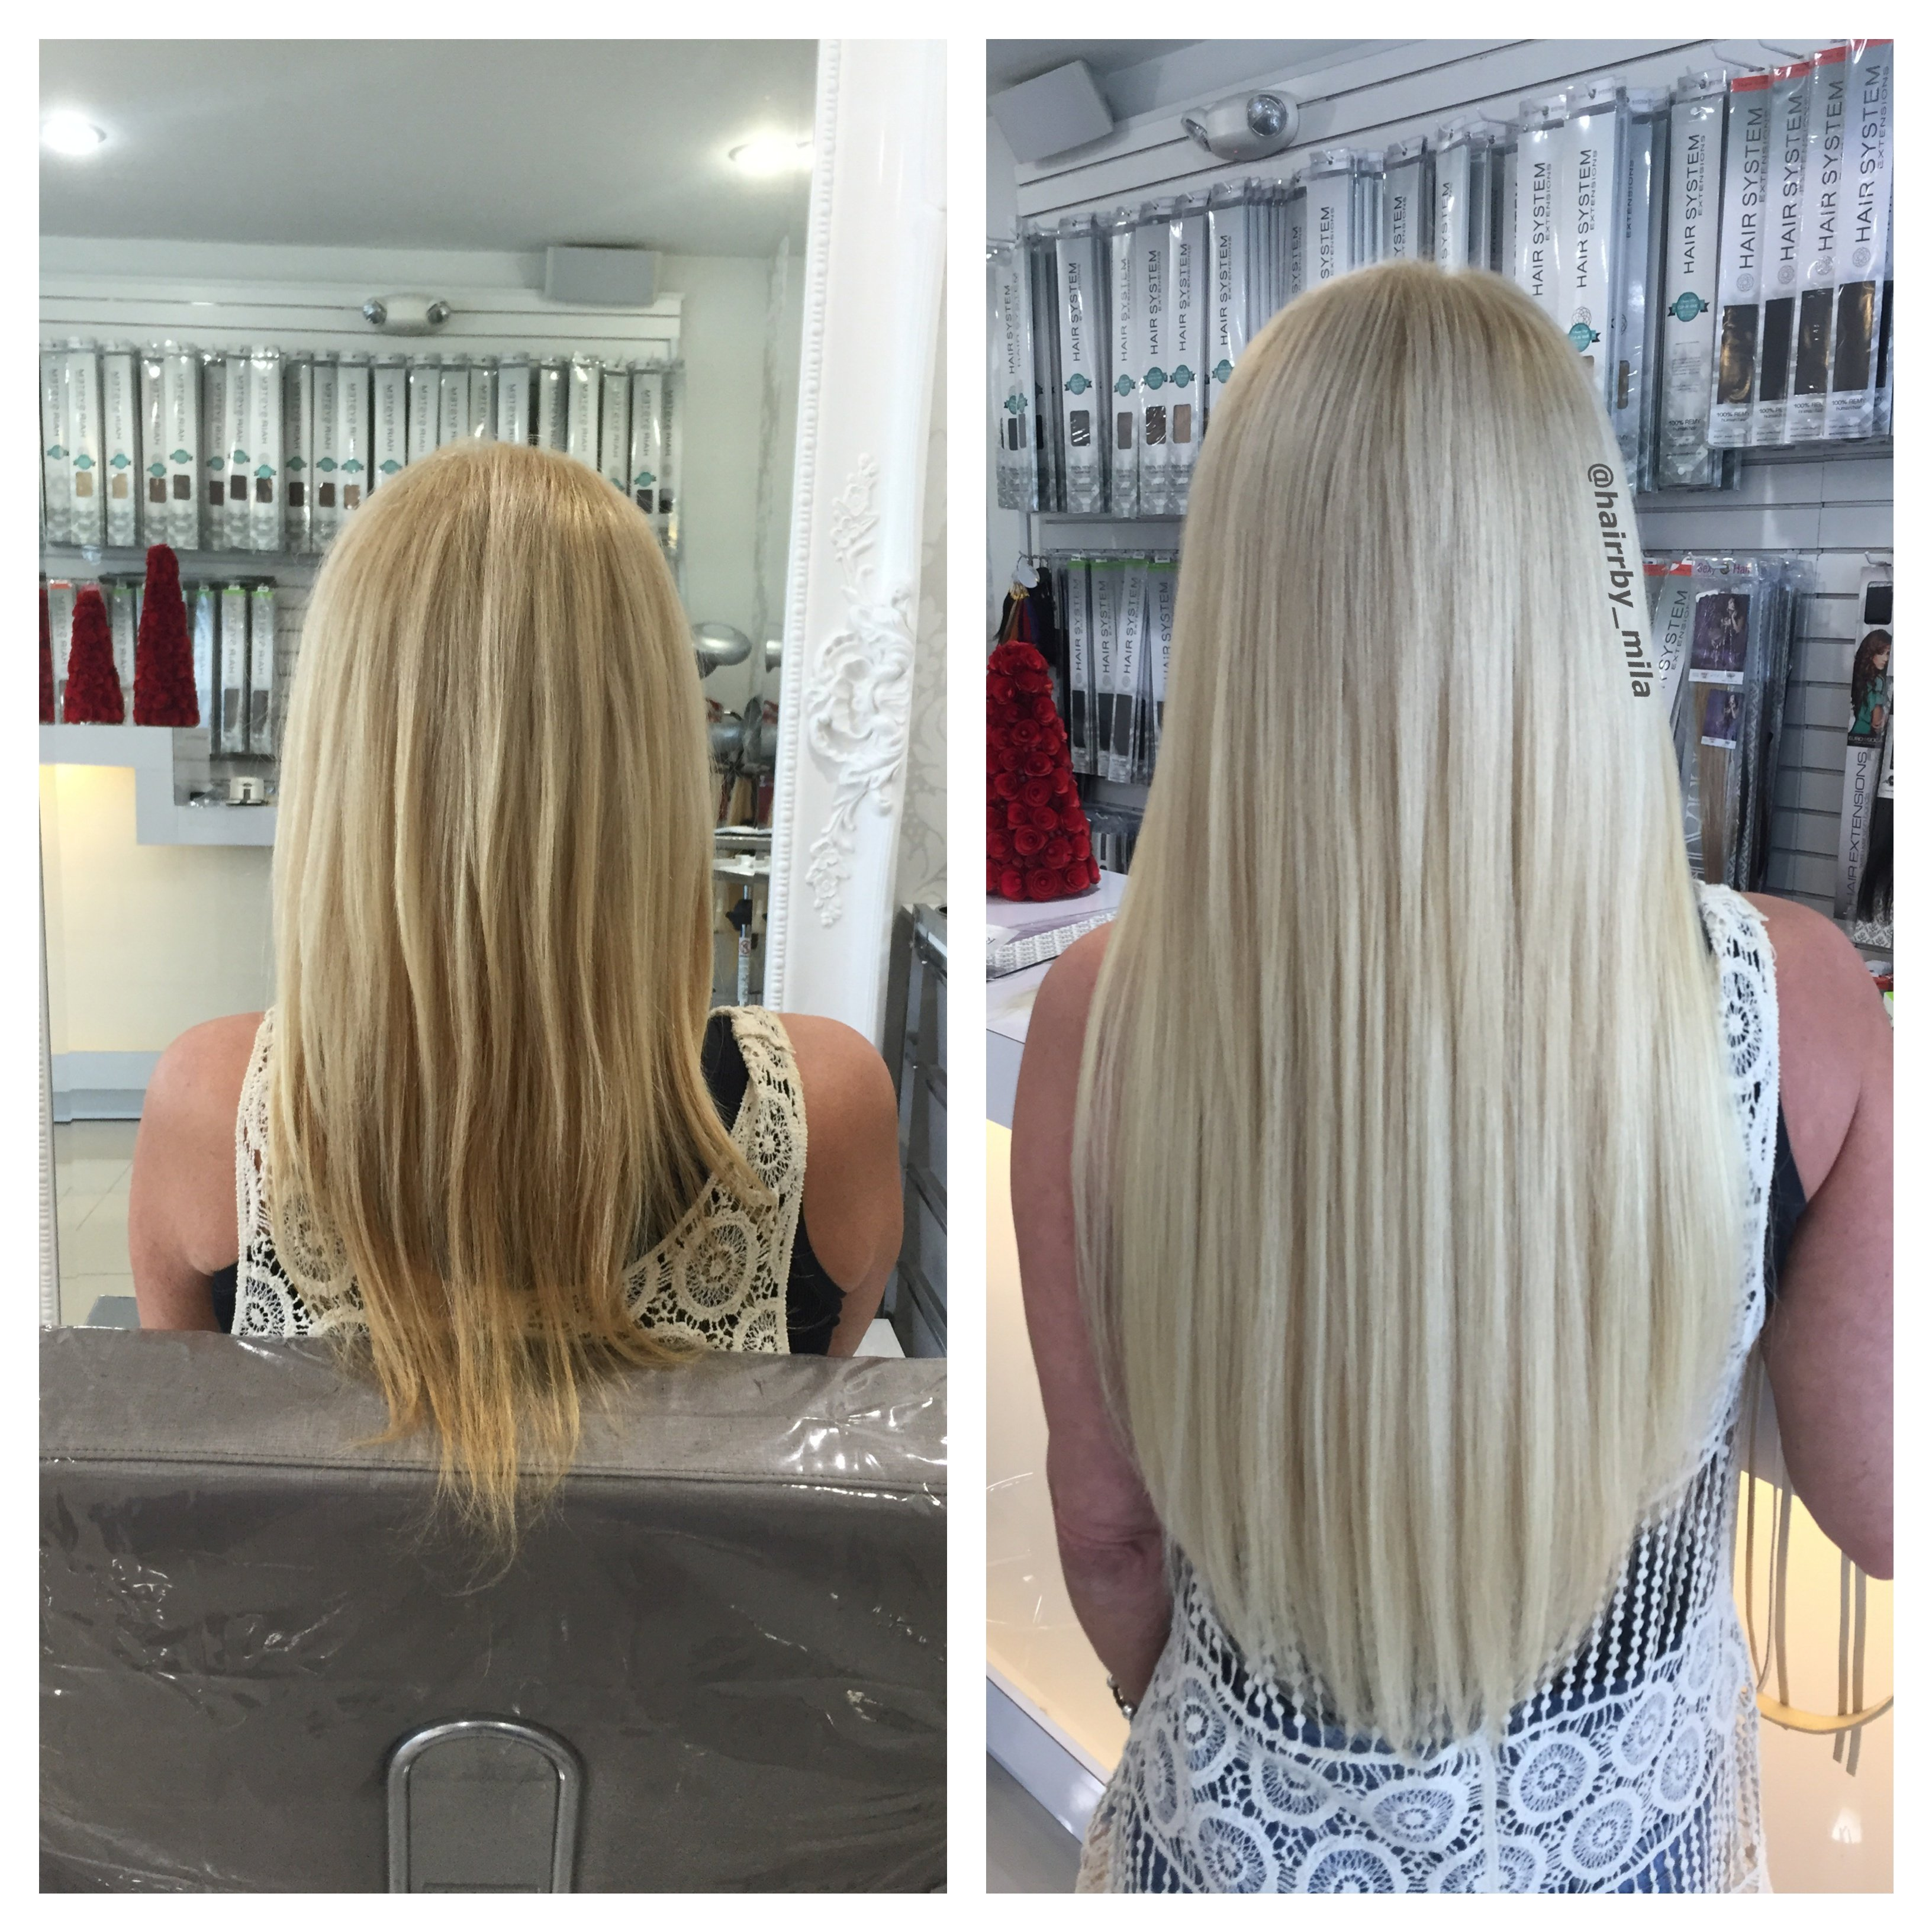 Hair extensions bets hair extensions salon beautylocksextensions - Beauty salon hair extensions ...